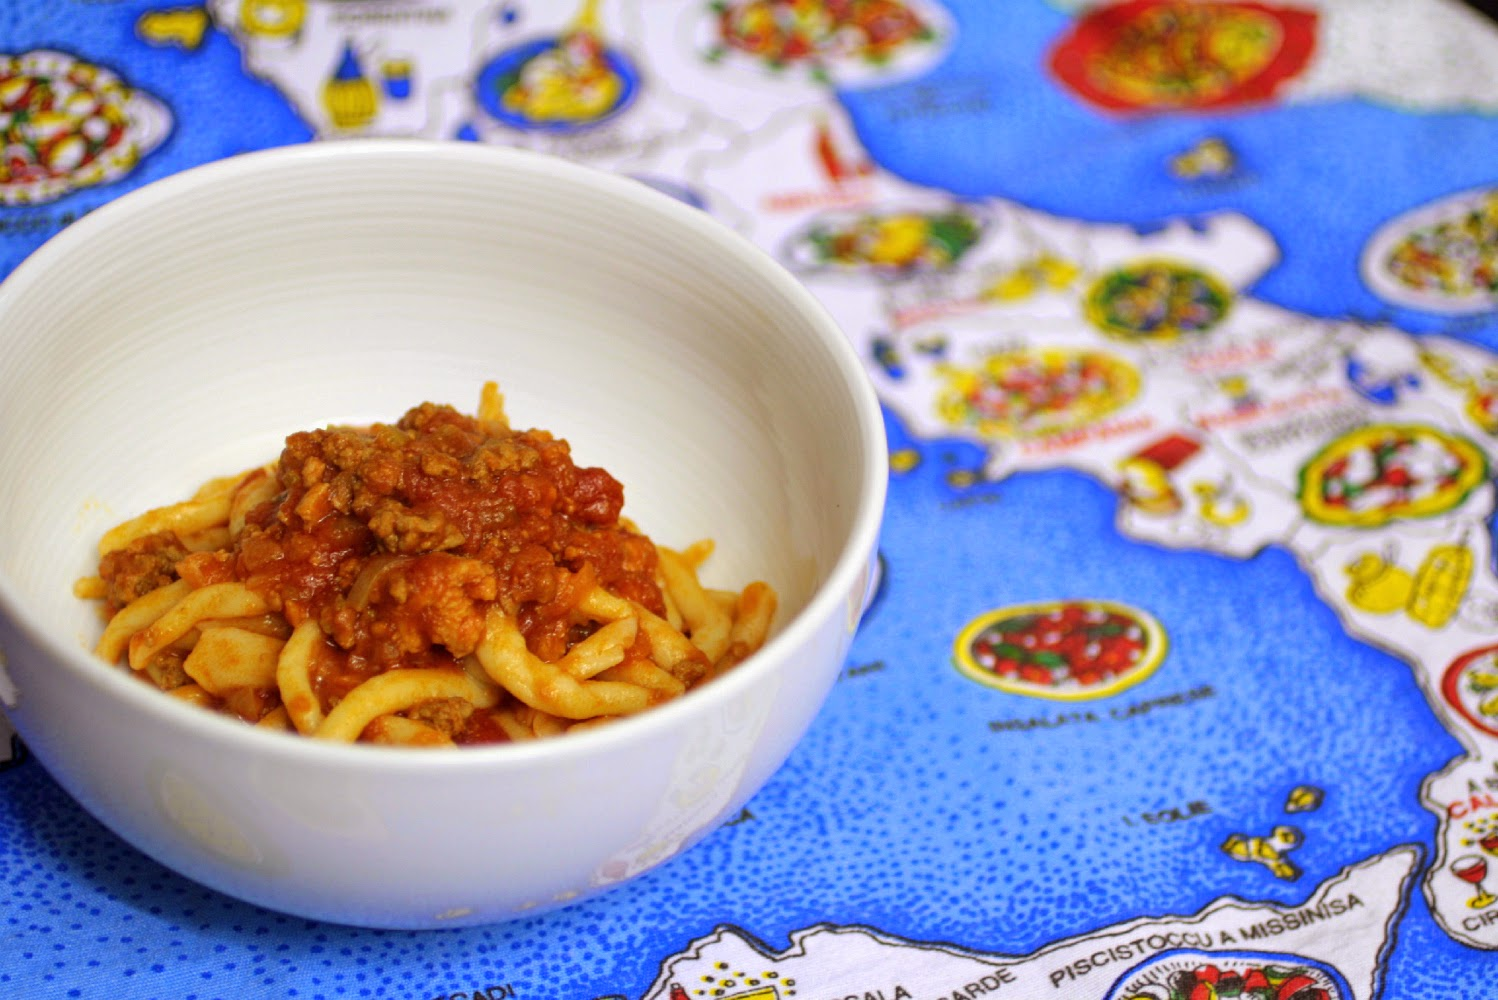 Nonna Floriana's Ragu - This recipe for ragu comes all the way from an Italian kitchen in the Emilio-Romagnia region.  Using only a few simple ingredients it is rich, filling and surprisingly easy!